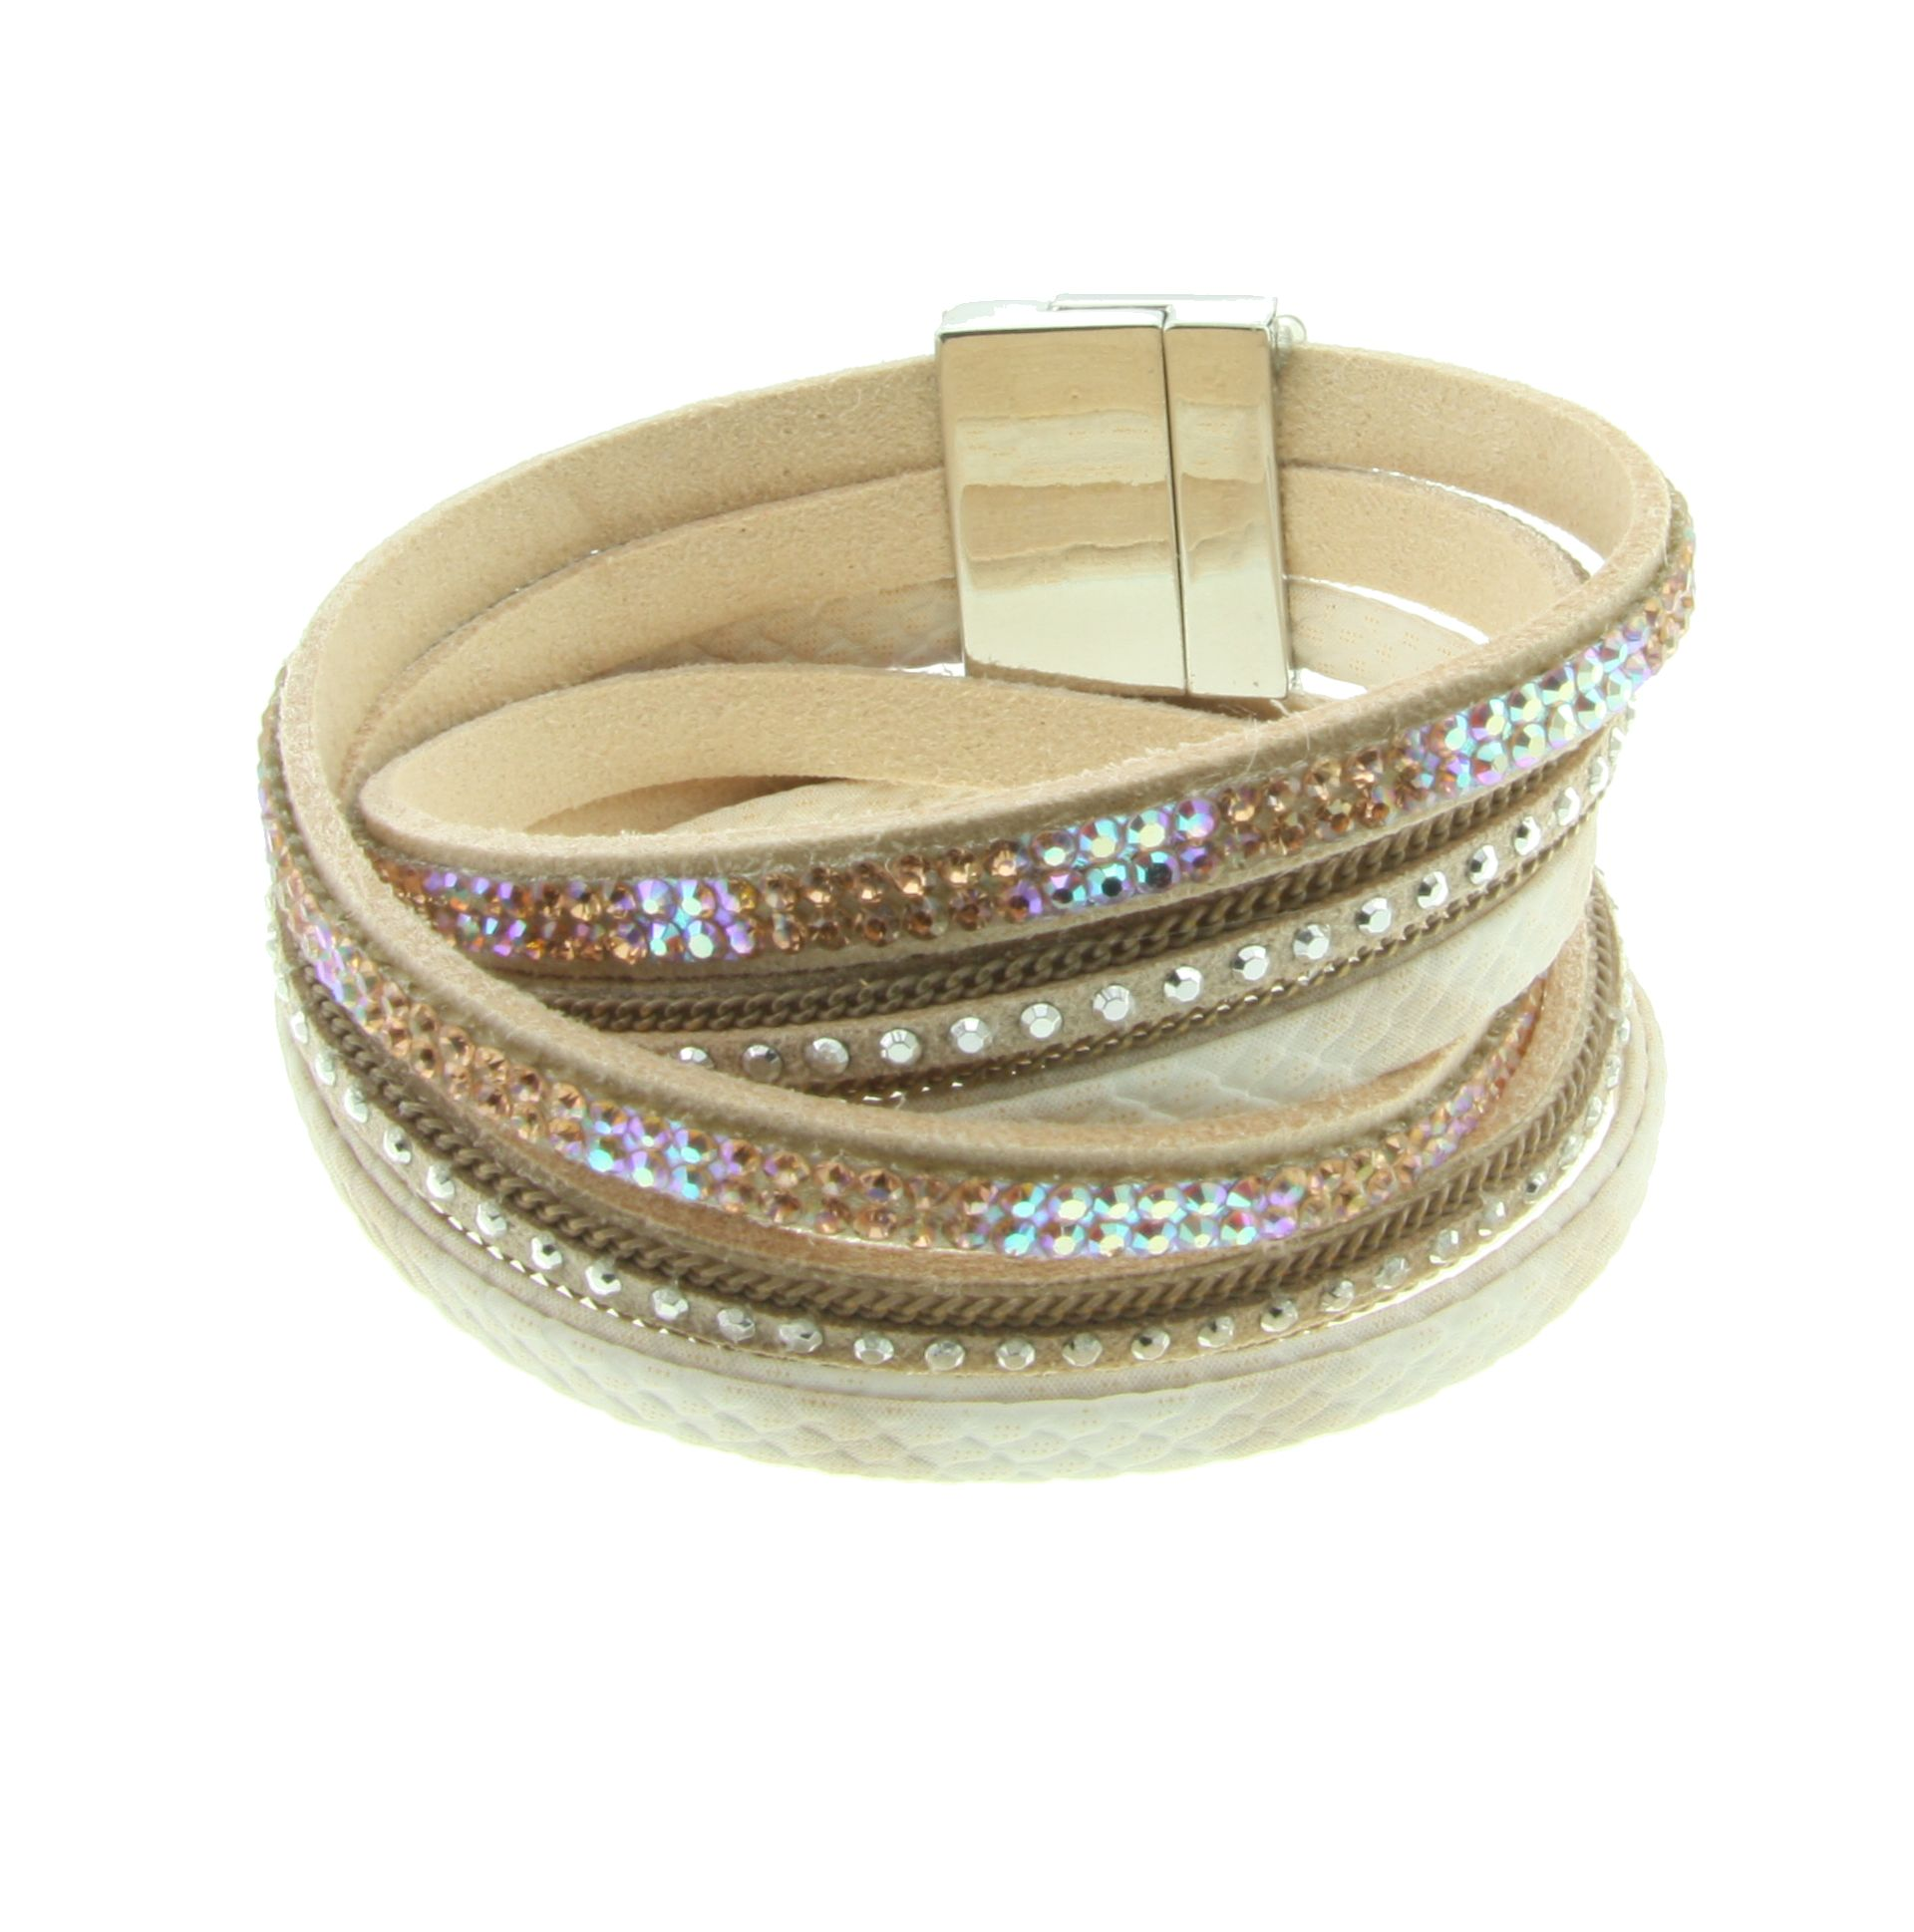 Magneet Armband Magneet Armband Shine Behave Sieraden Mode Accessoires